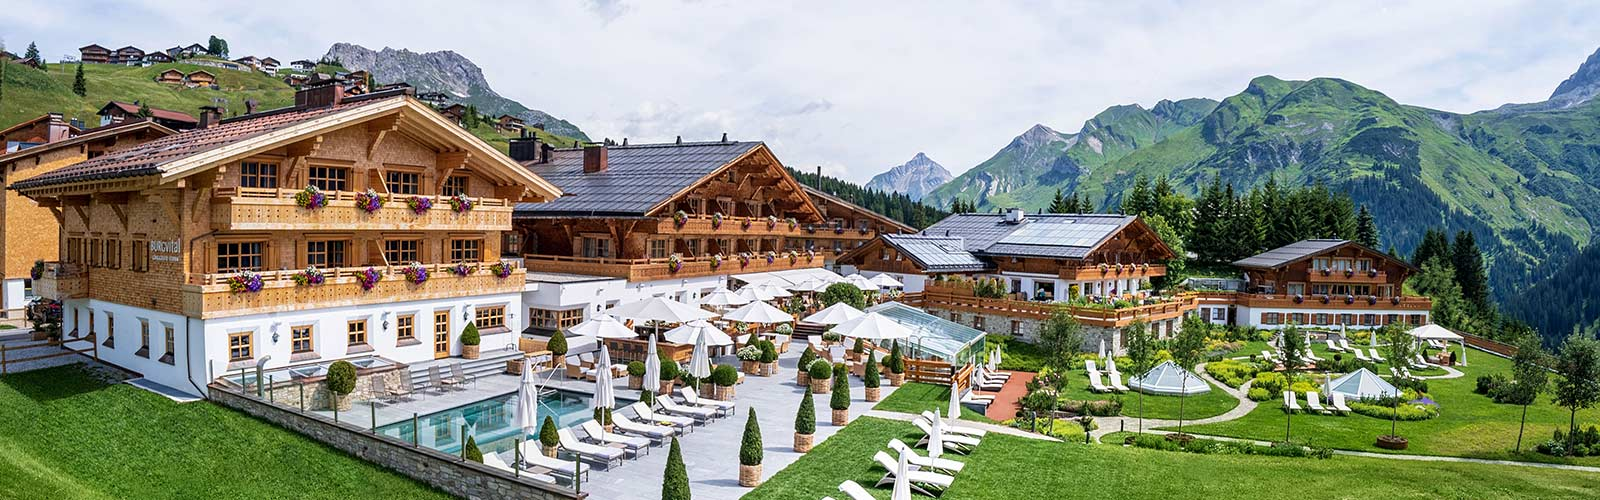 Burg Vital Resort in Lech am Arlberg